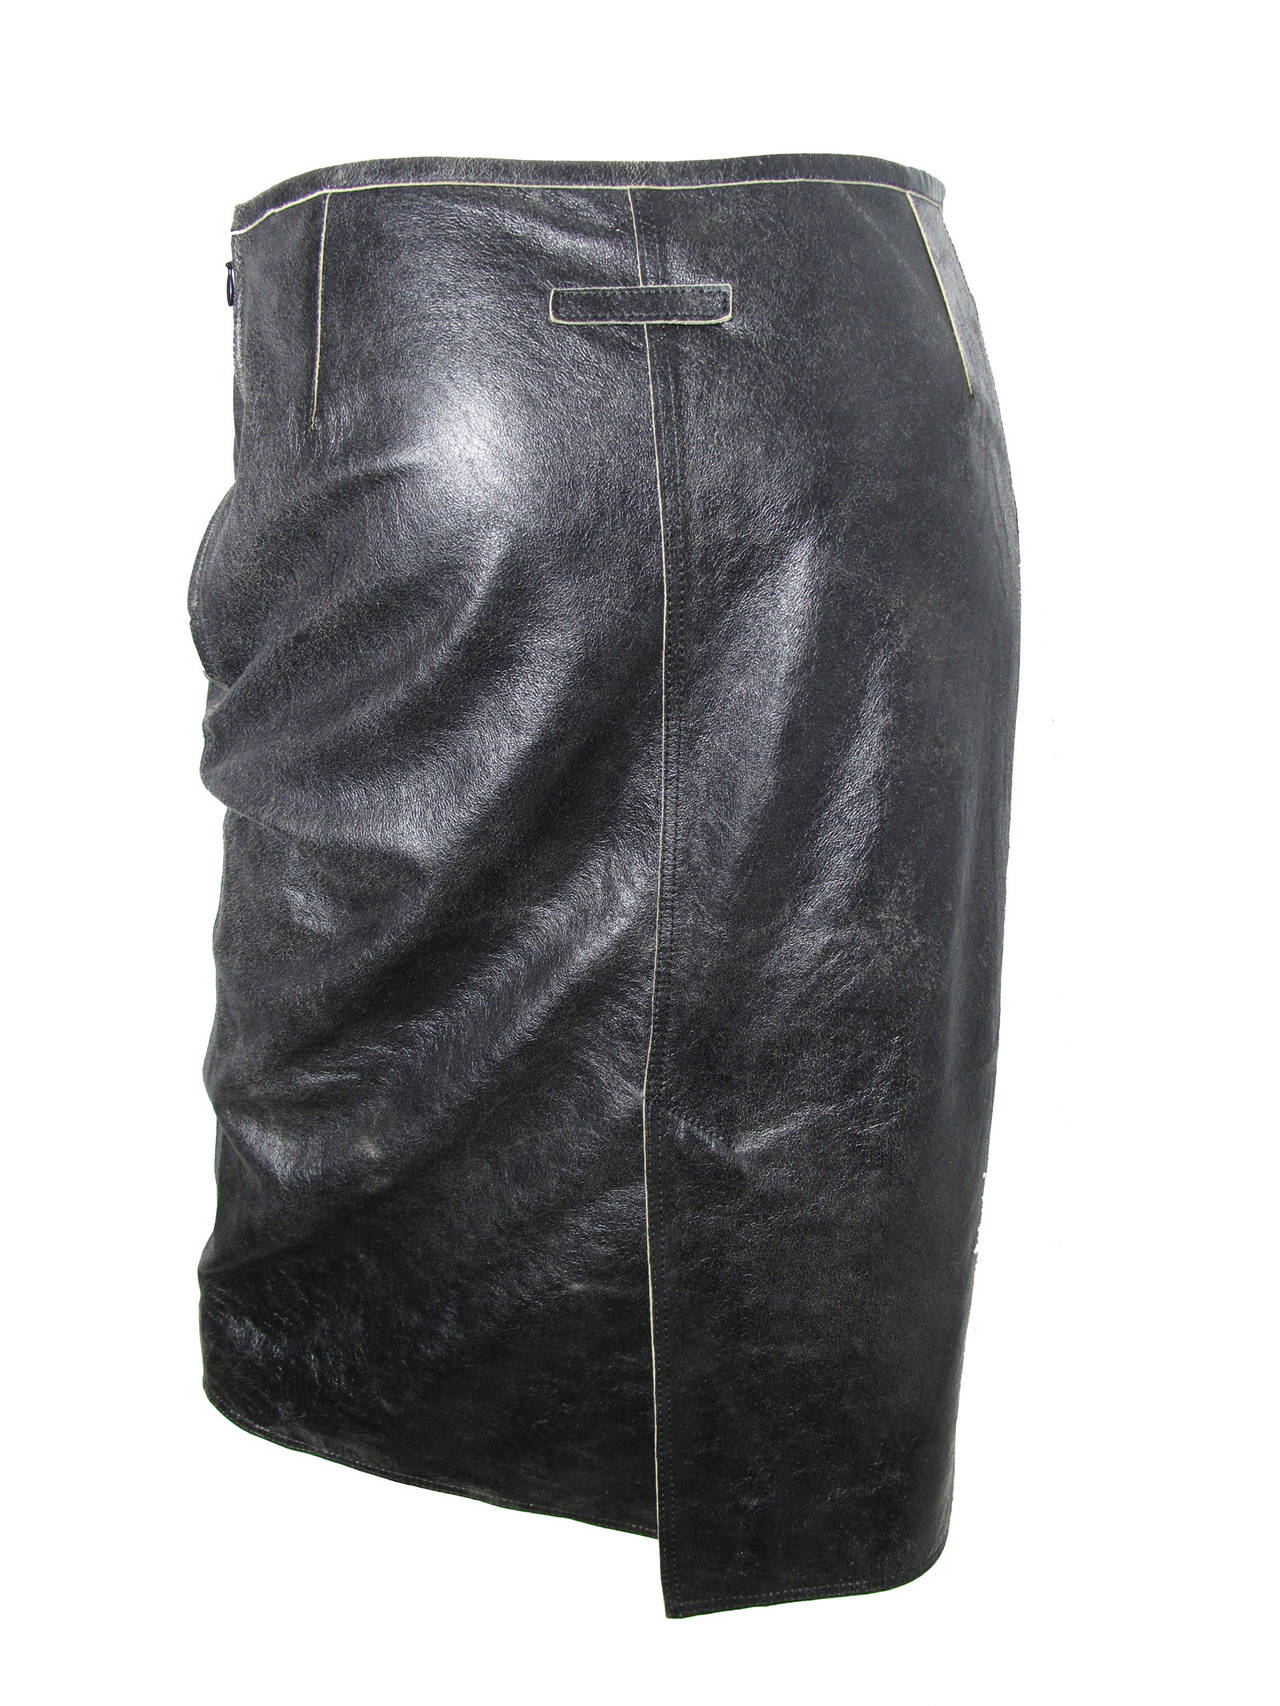 Jean Paul Gaultier Distressed Leather Skirt 4